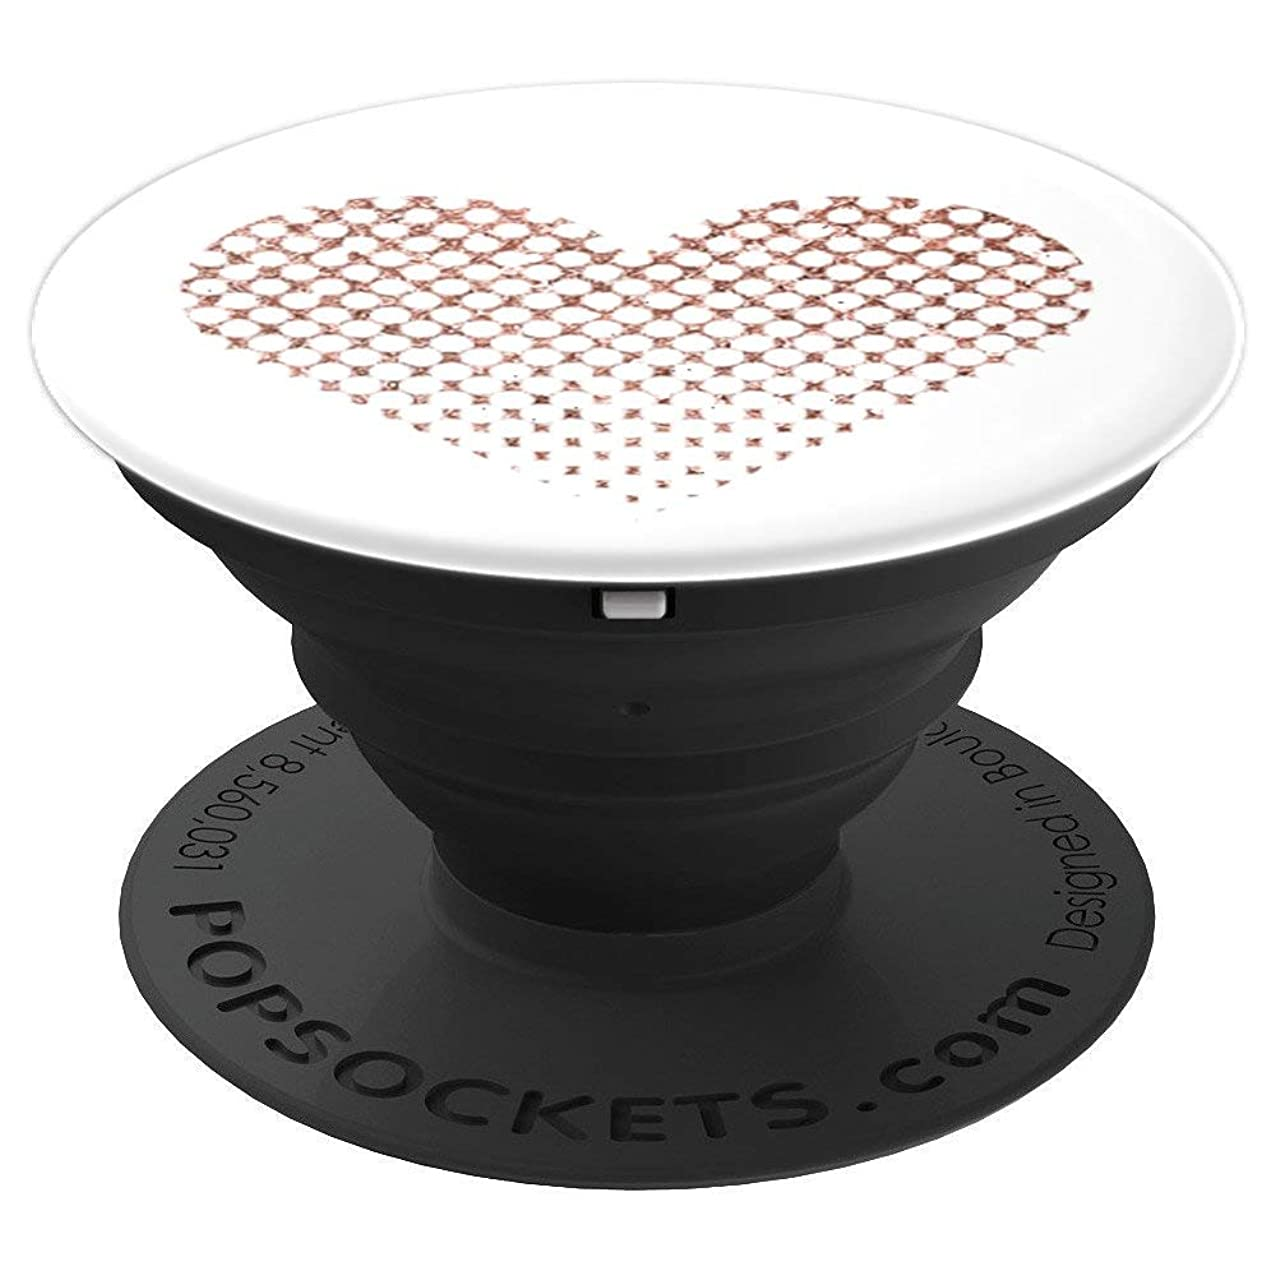 Rose Gold Heart Pop Socket Valentines Day White Dots Love - PopSockets Grip and Stand for Phones and Tablets nohzmsnhgaeyy498